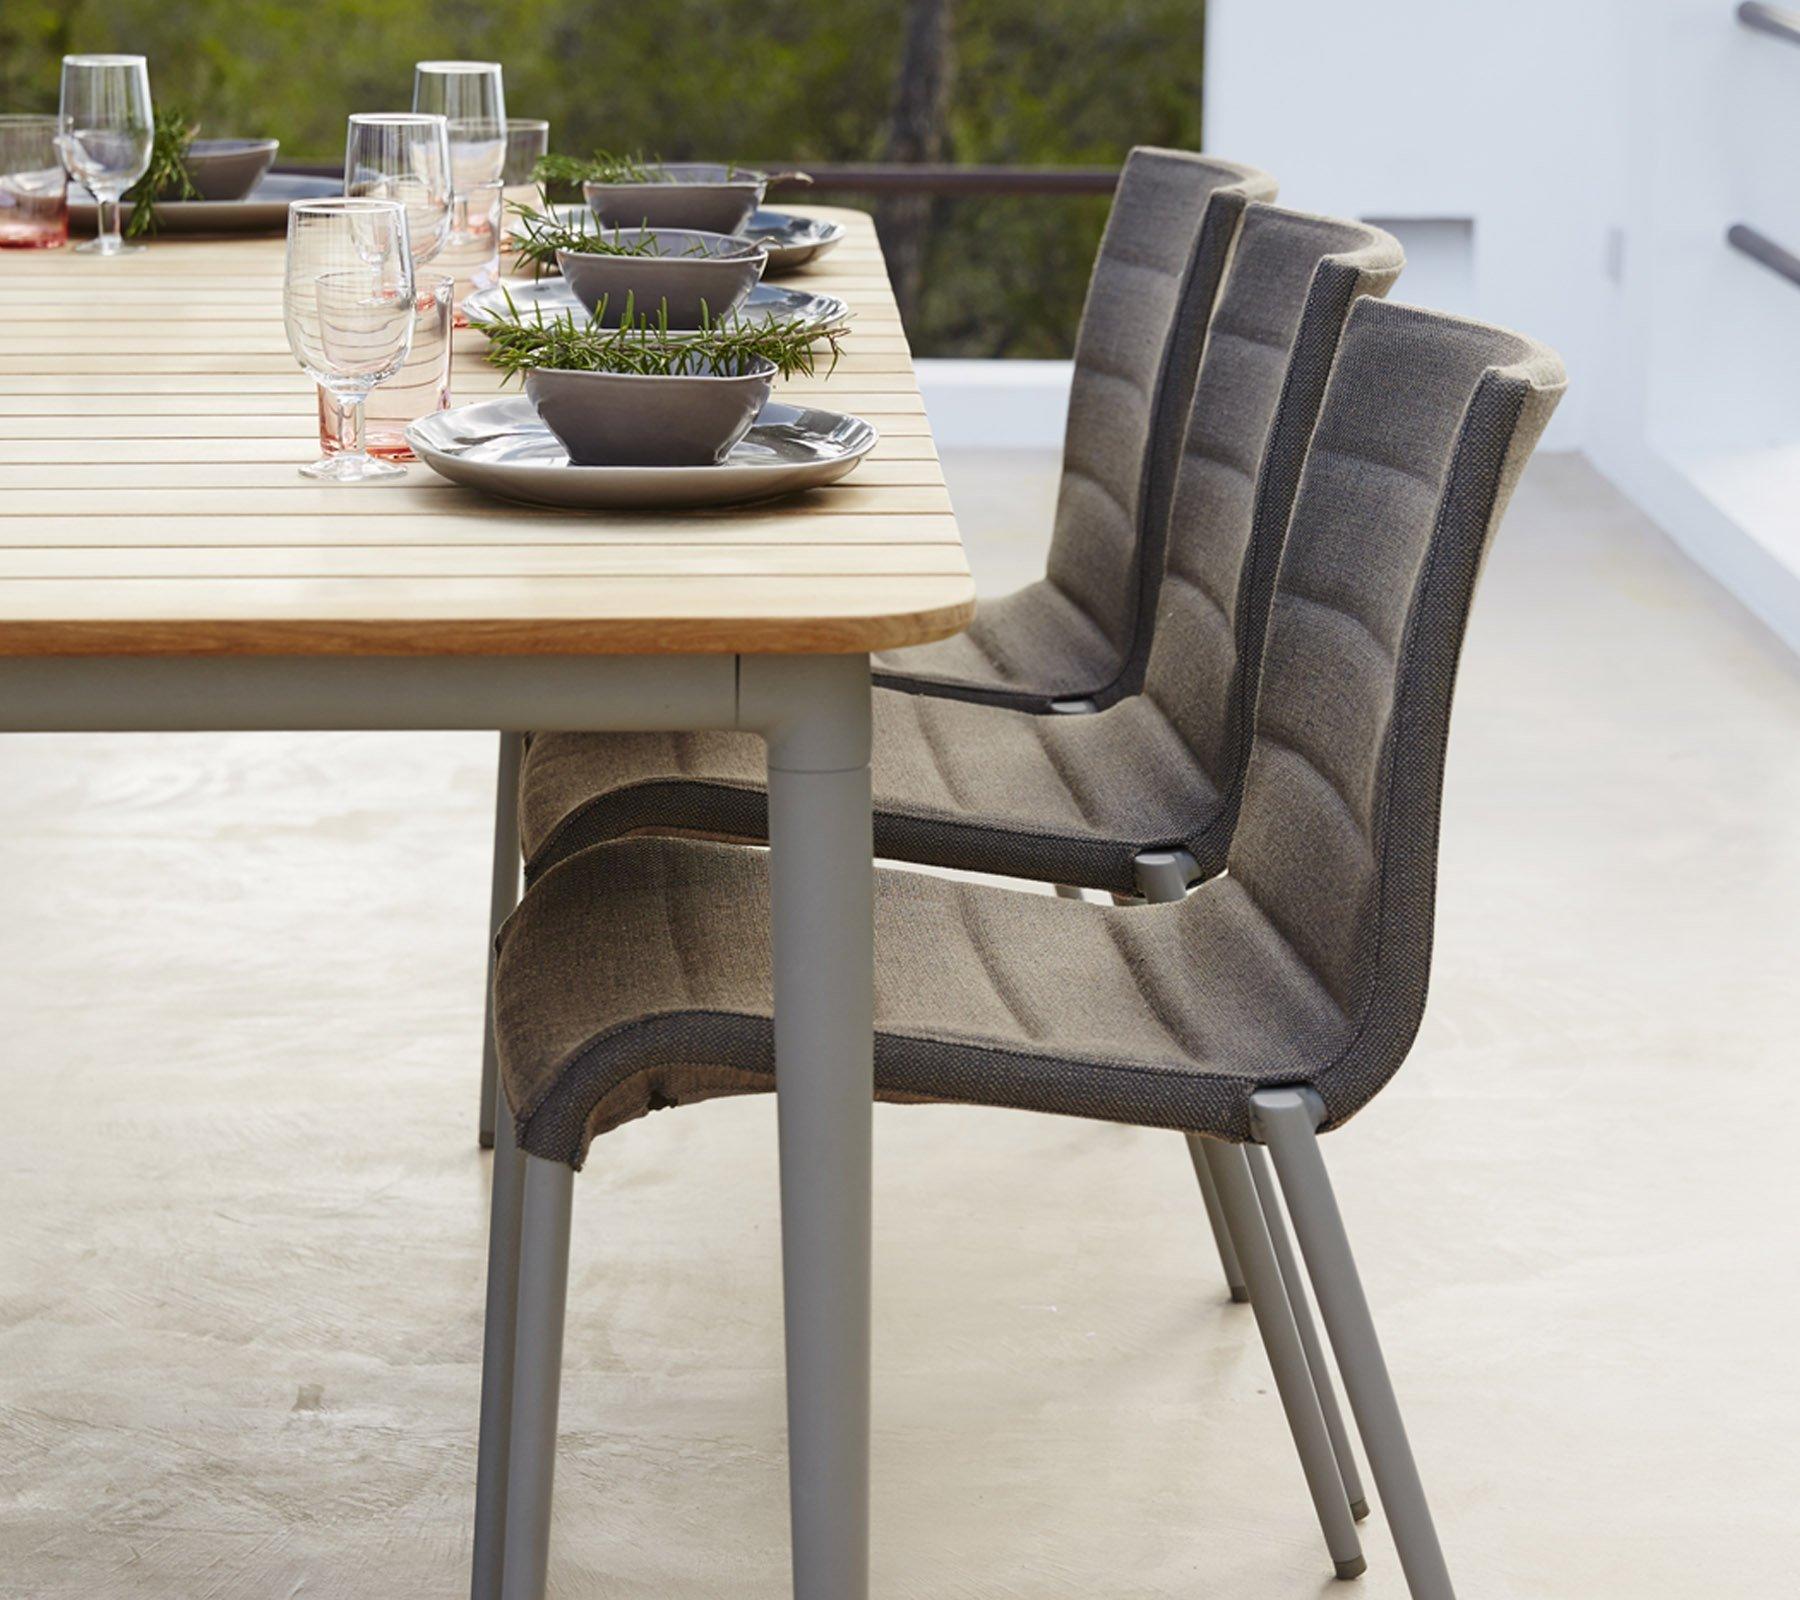 Core Dining Table from Cane-line, designed by Foersom & Hiort-Lorenzen MDD